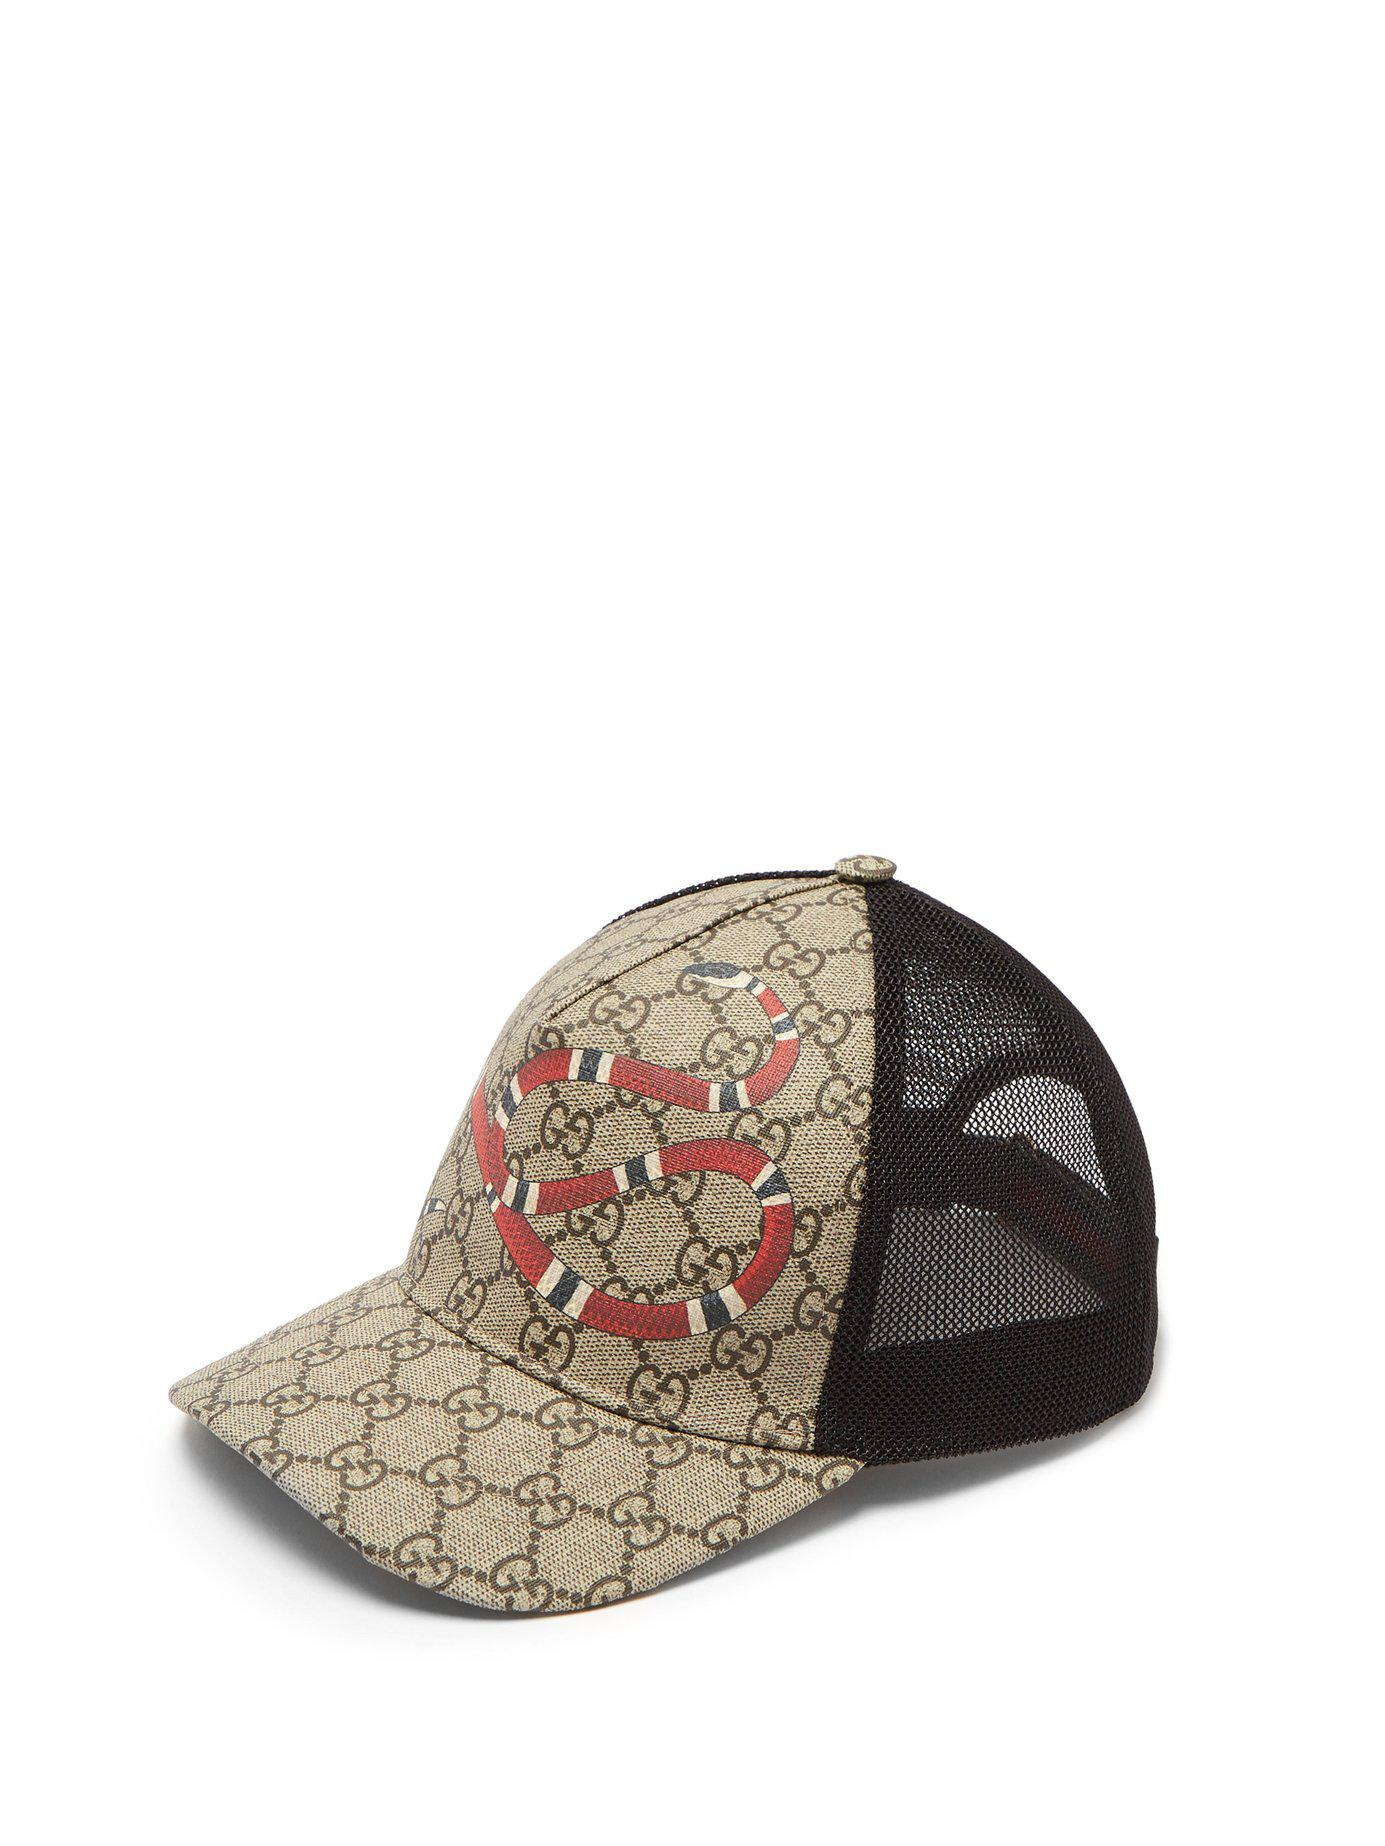 37e96bf9 Gucci Gg Supreme And Kingsnake Print Mesh Cap in Natural for Men - Lyst